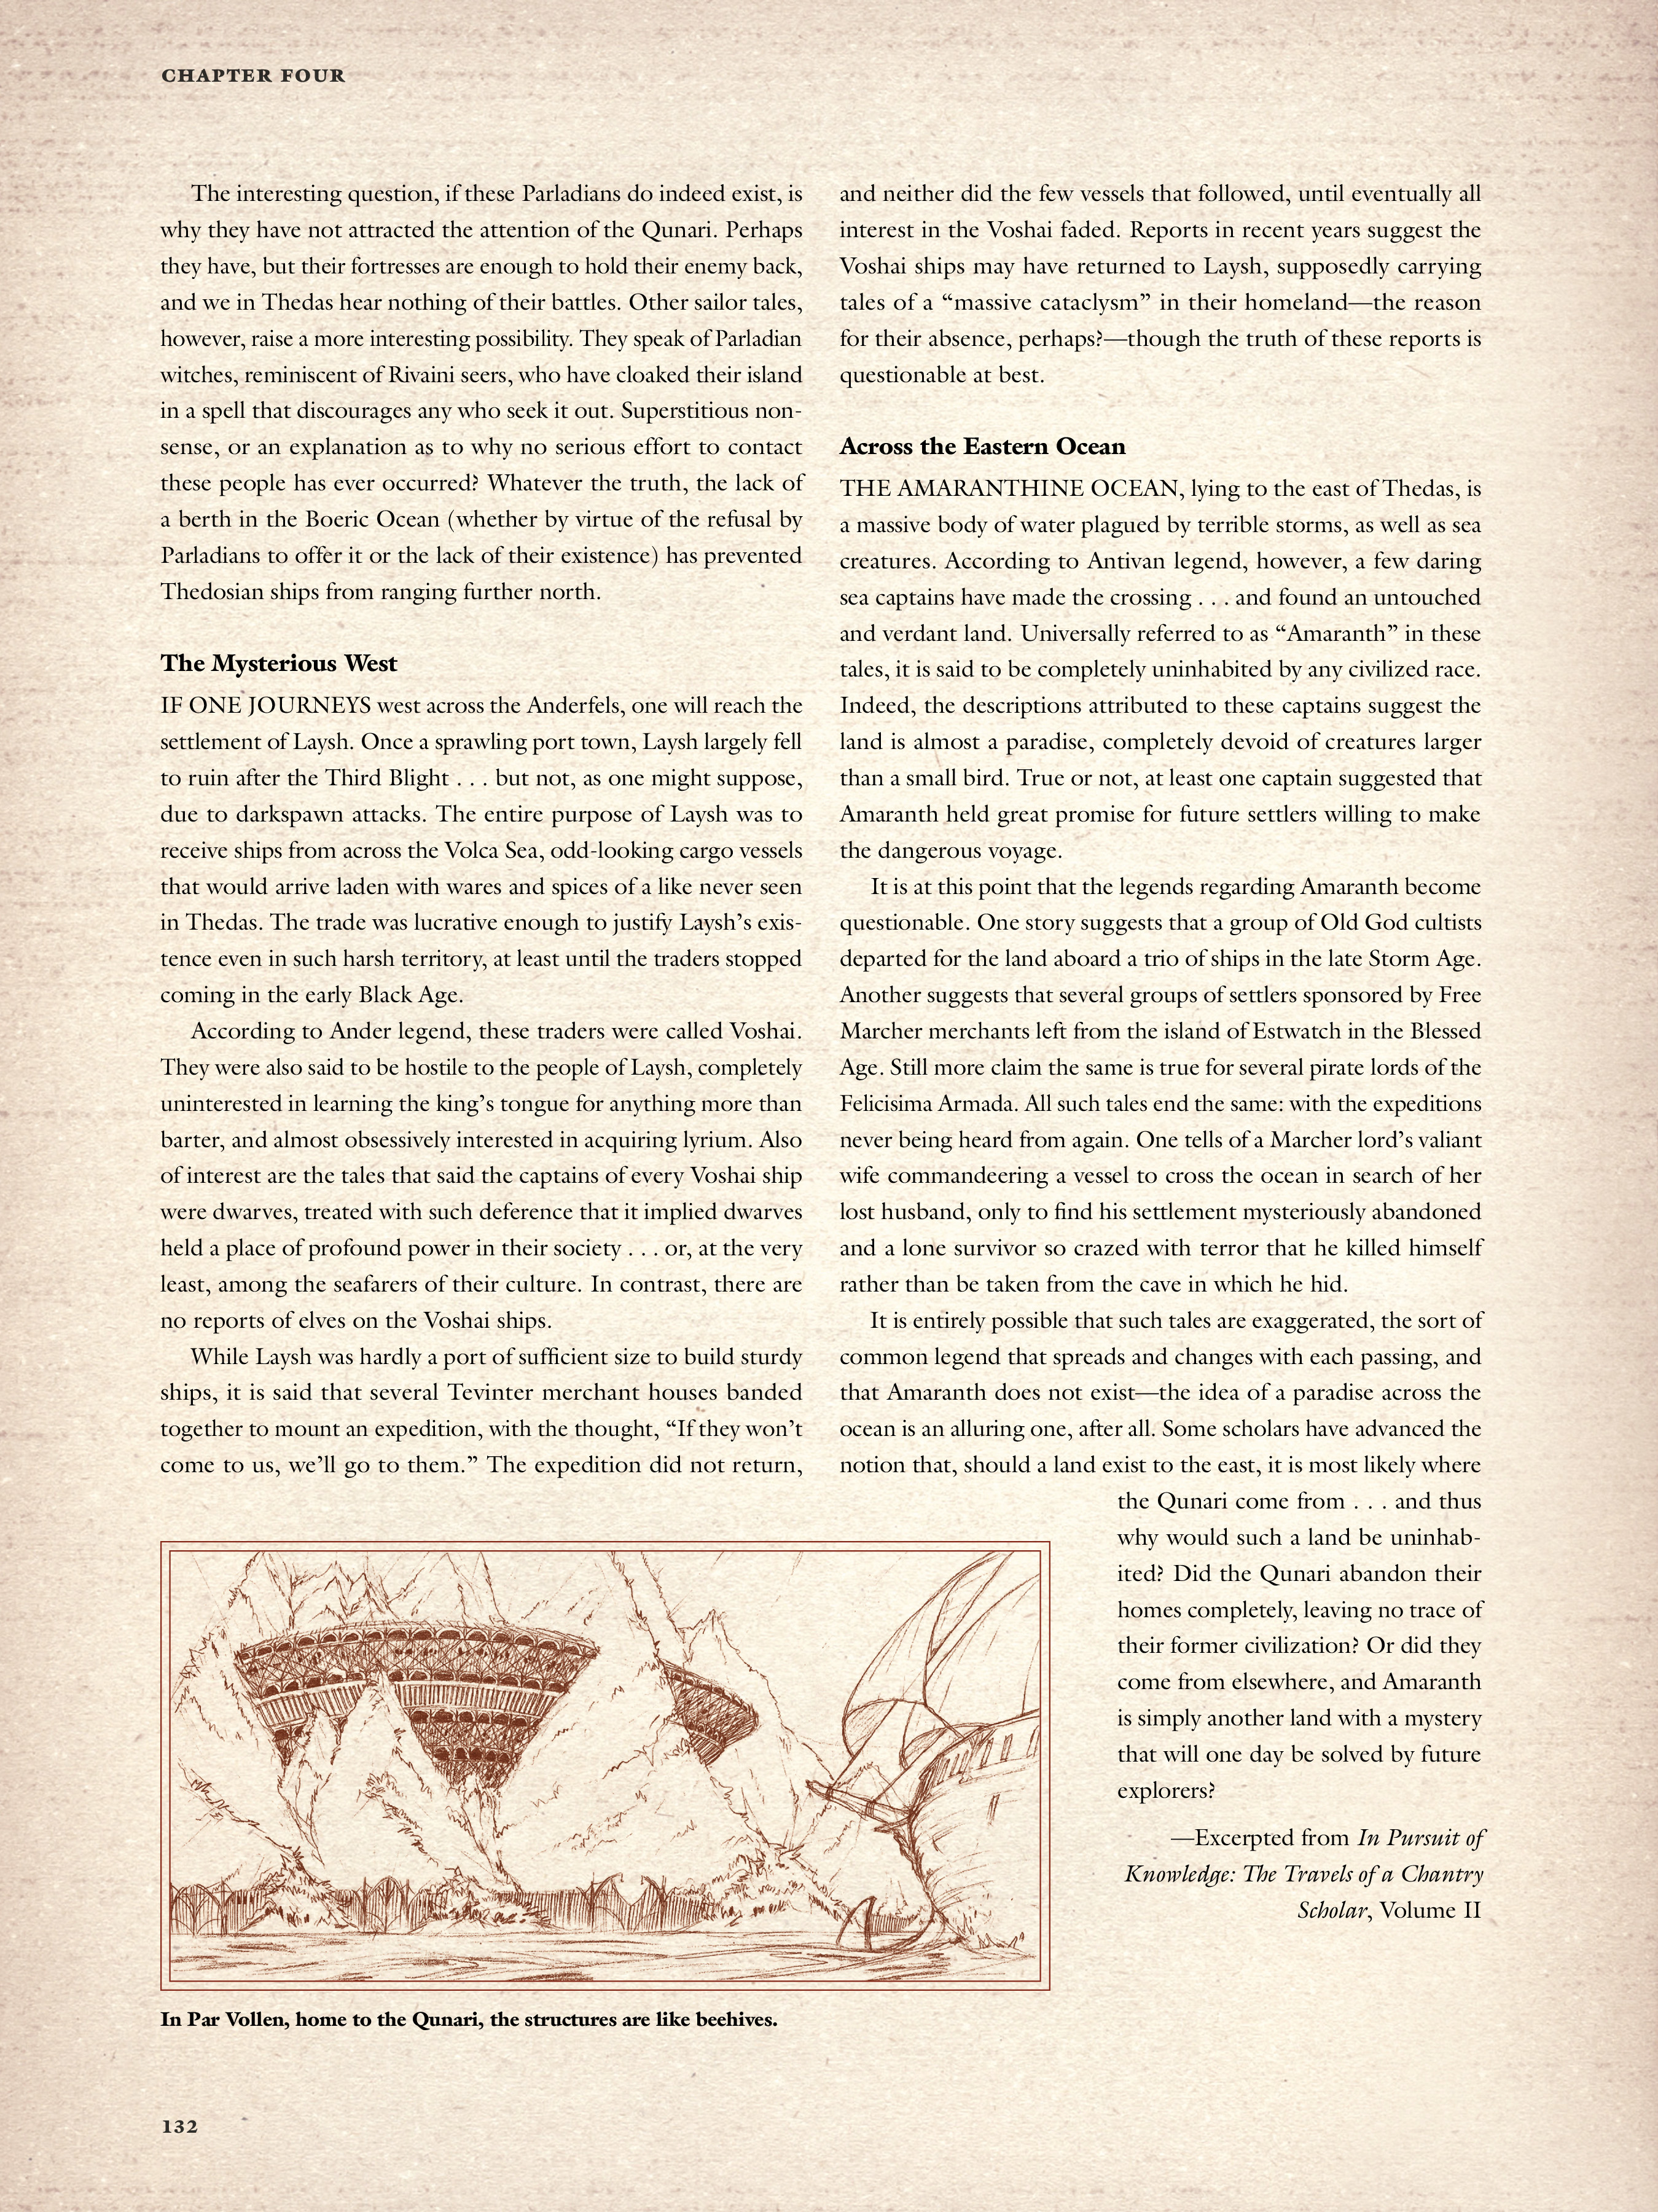 Read online Dragon Age: The World of Thedas comic -  Issue # TPB 2 - 128